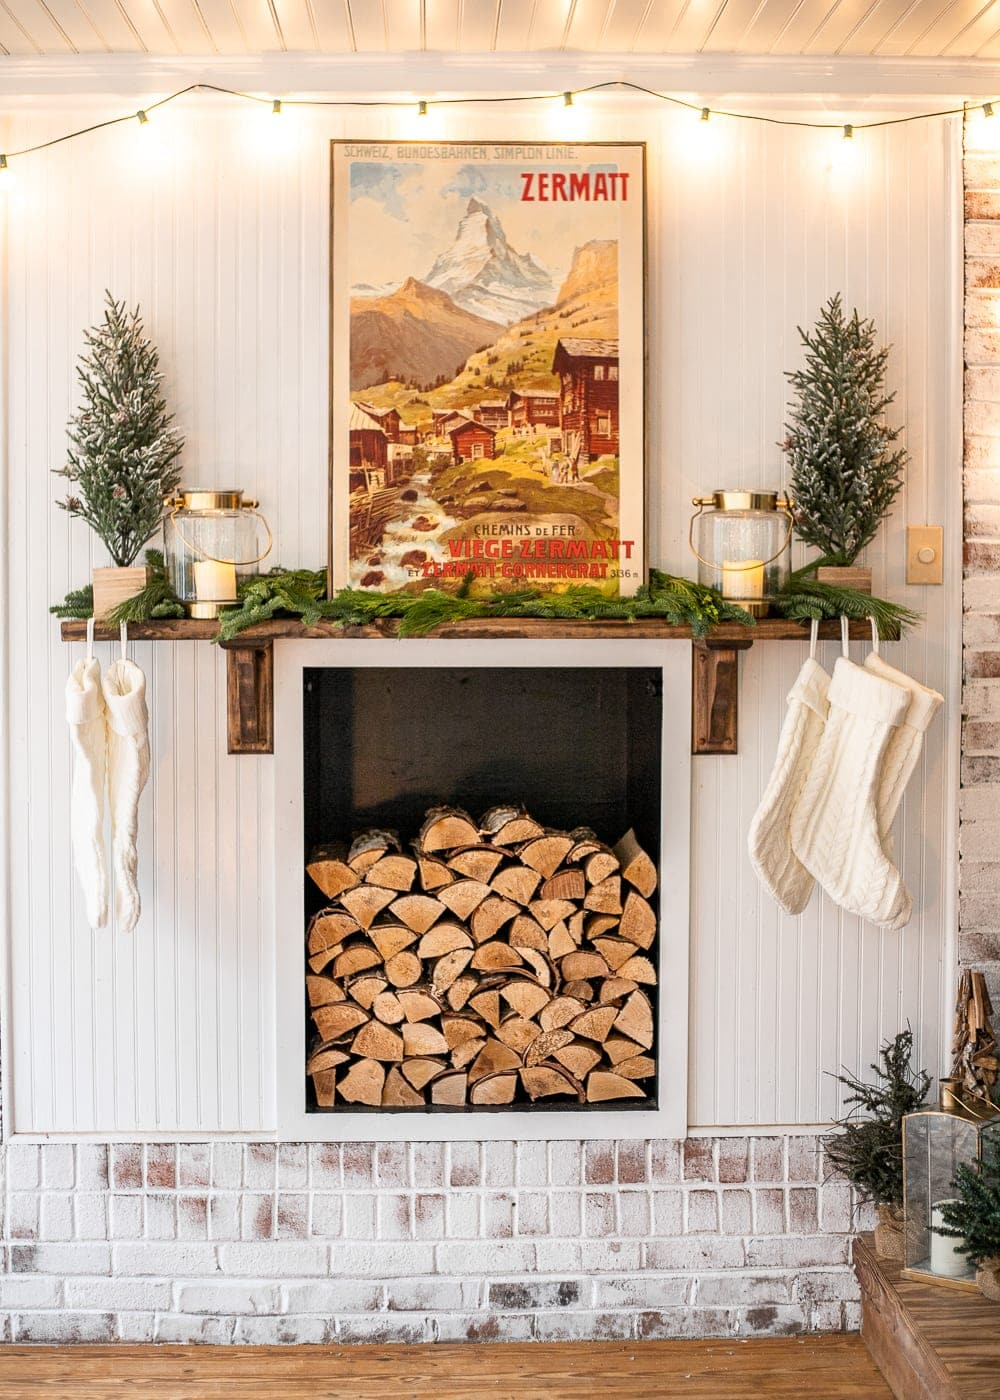 DIY faux fireplace decorated for Christmas with wood stack, vintage poster, mini trees, stockings, fresh greenery, lanterns, and string lights